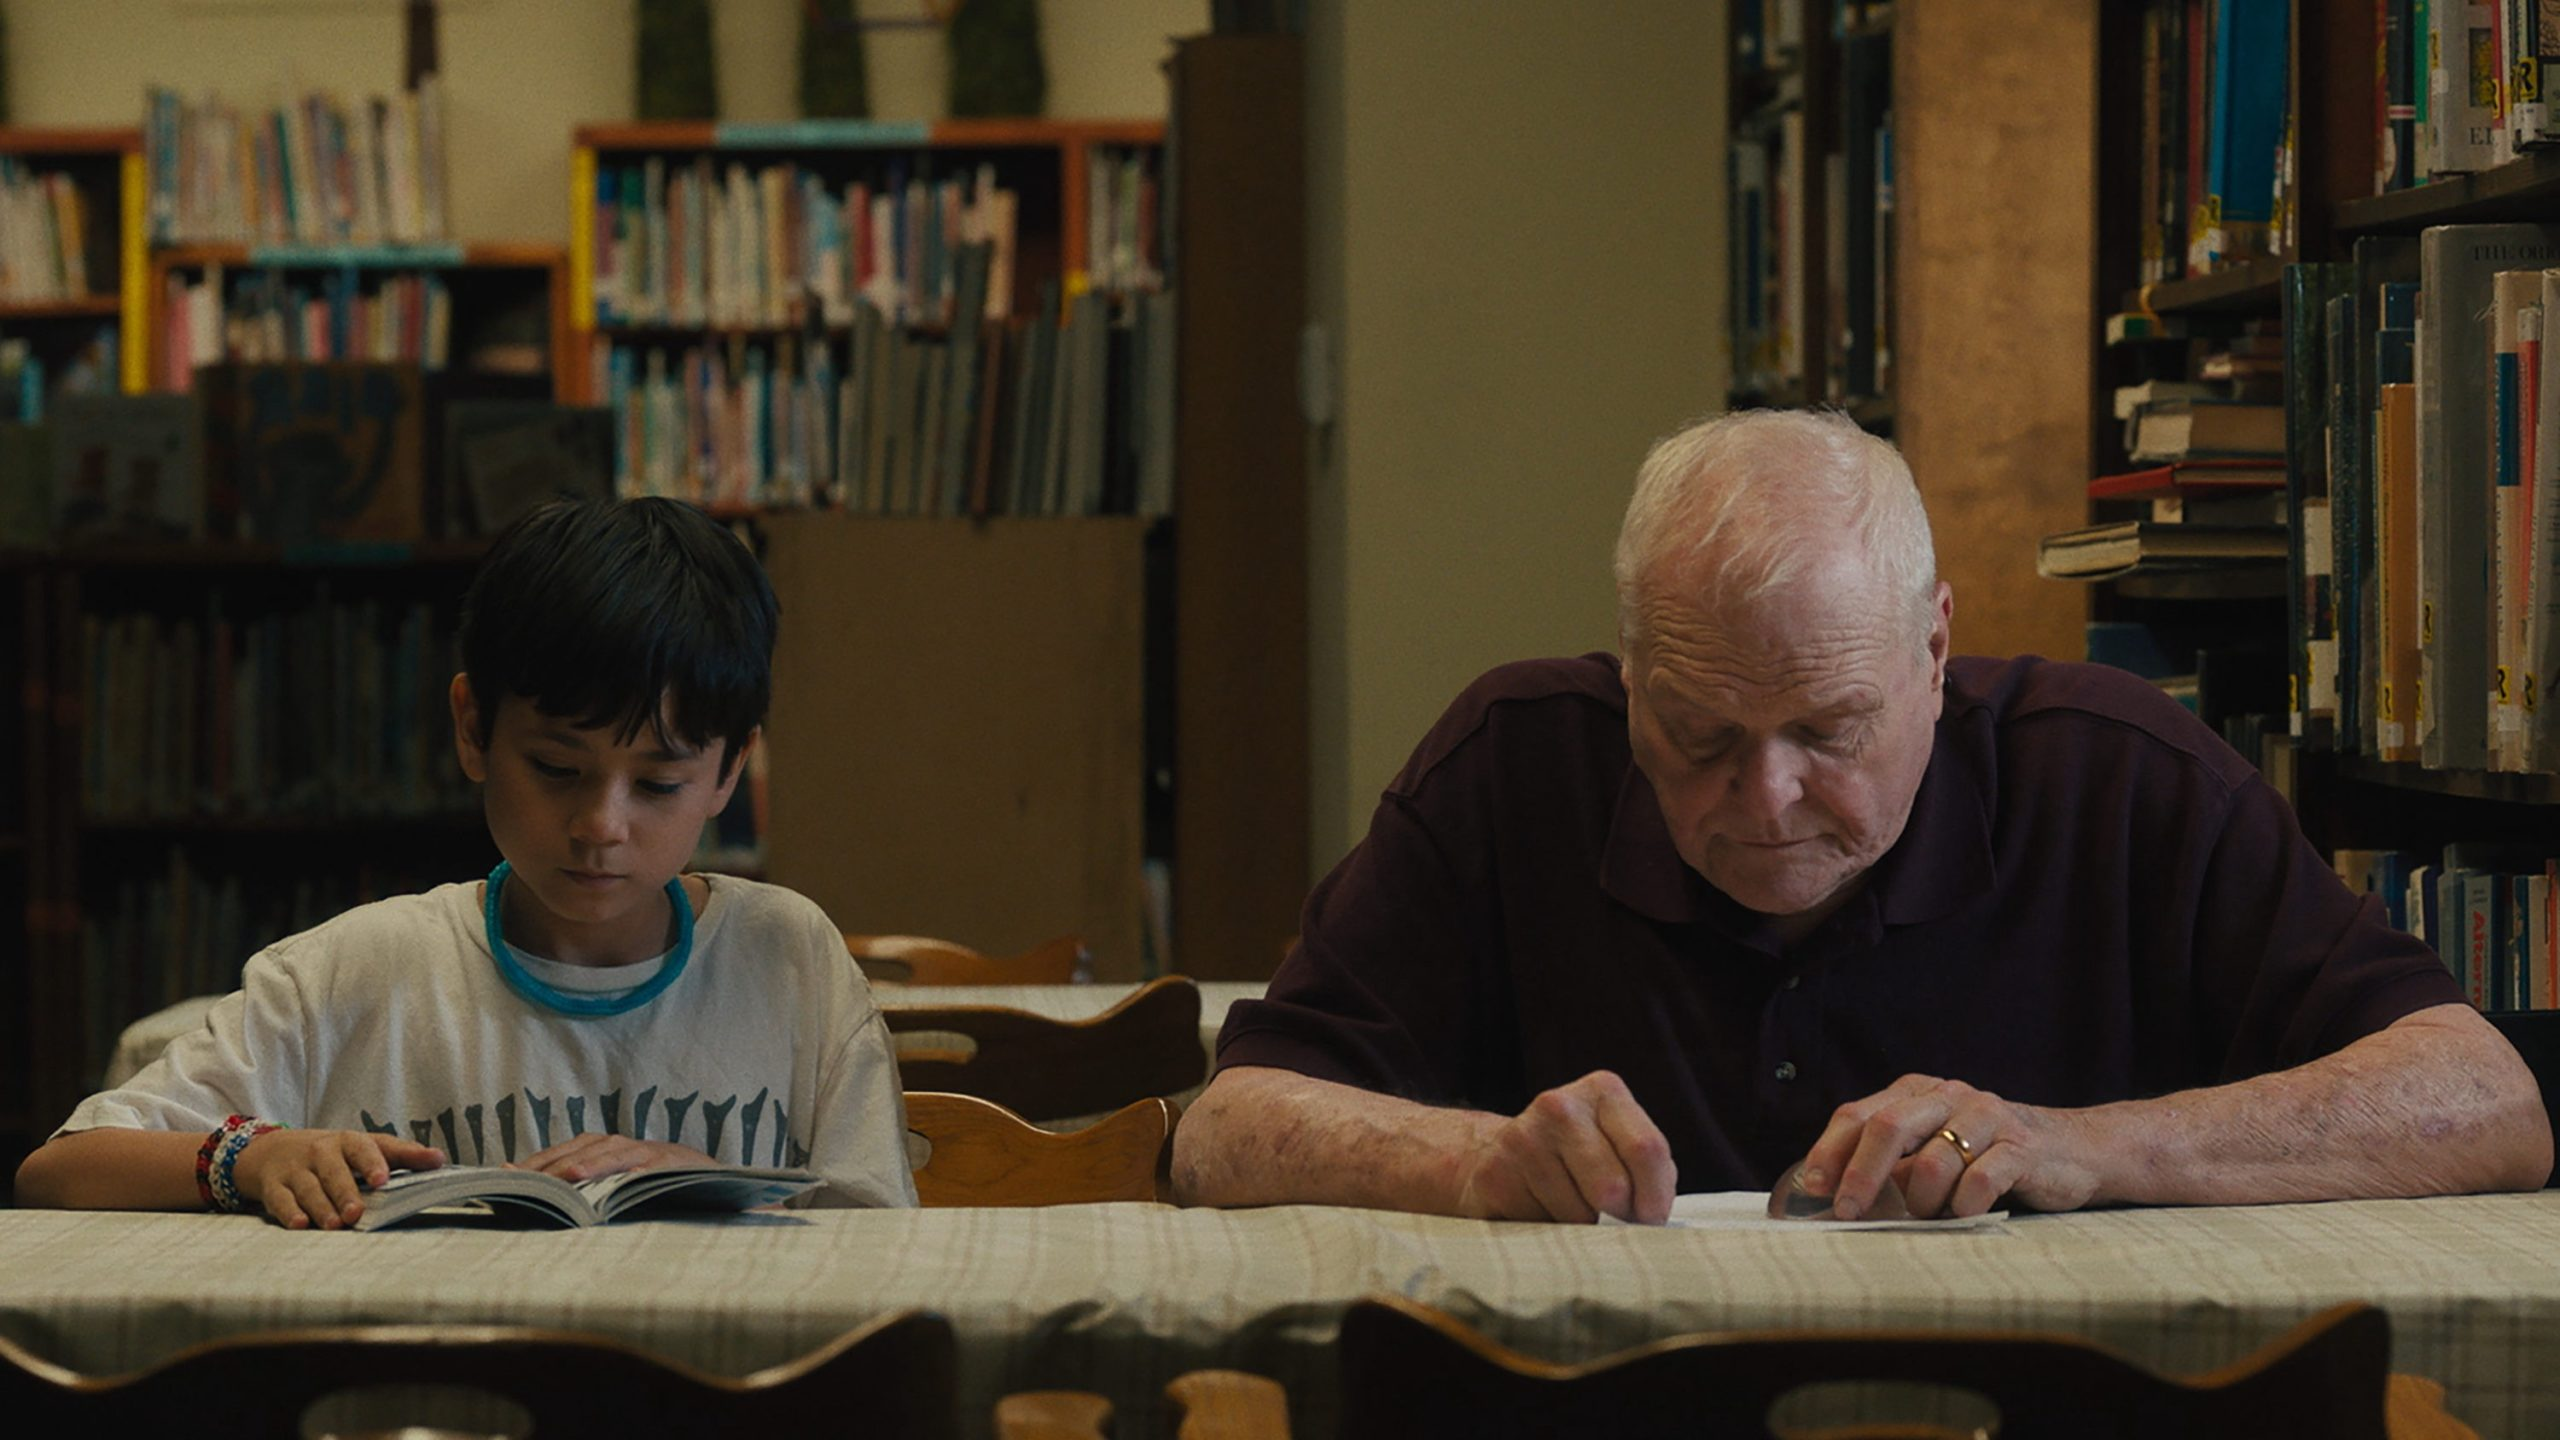 Cody and Del (an elderly white man) read together at a table.